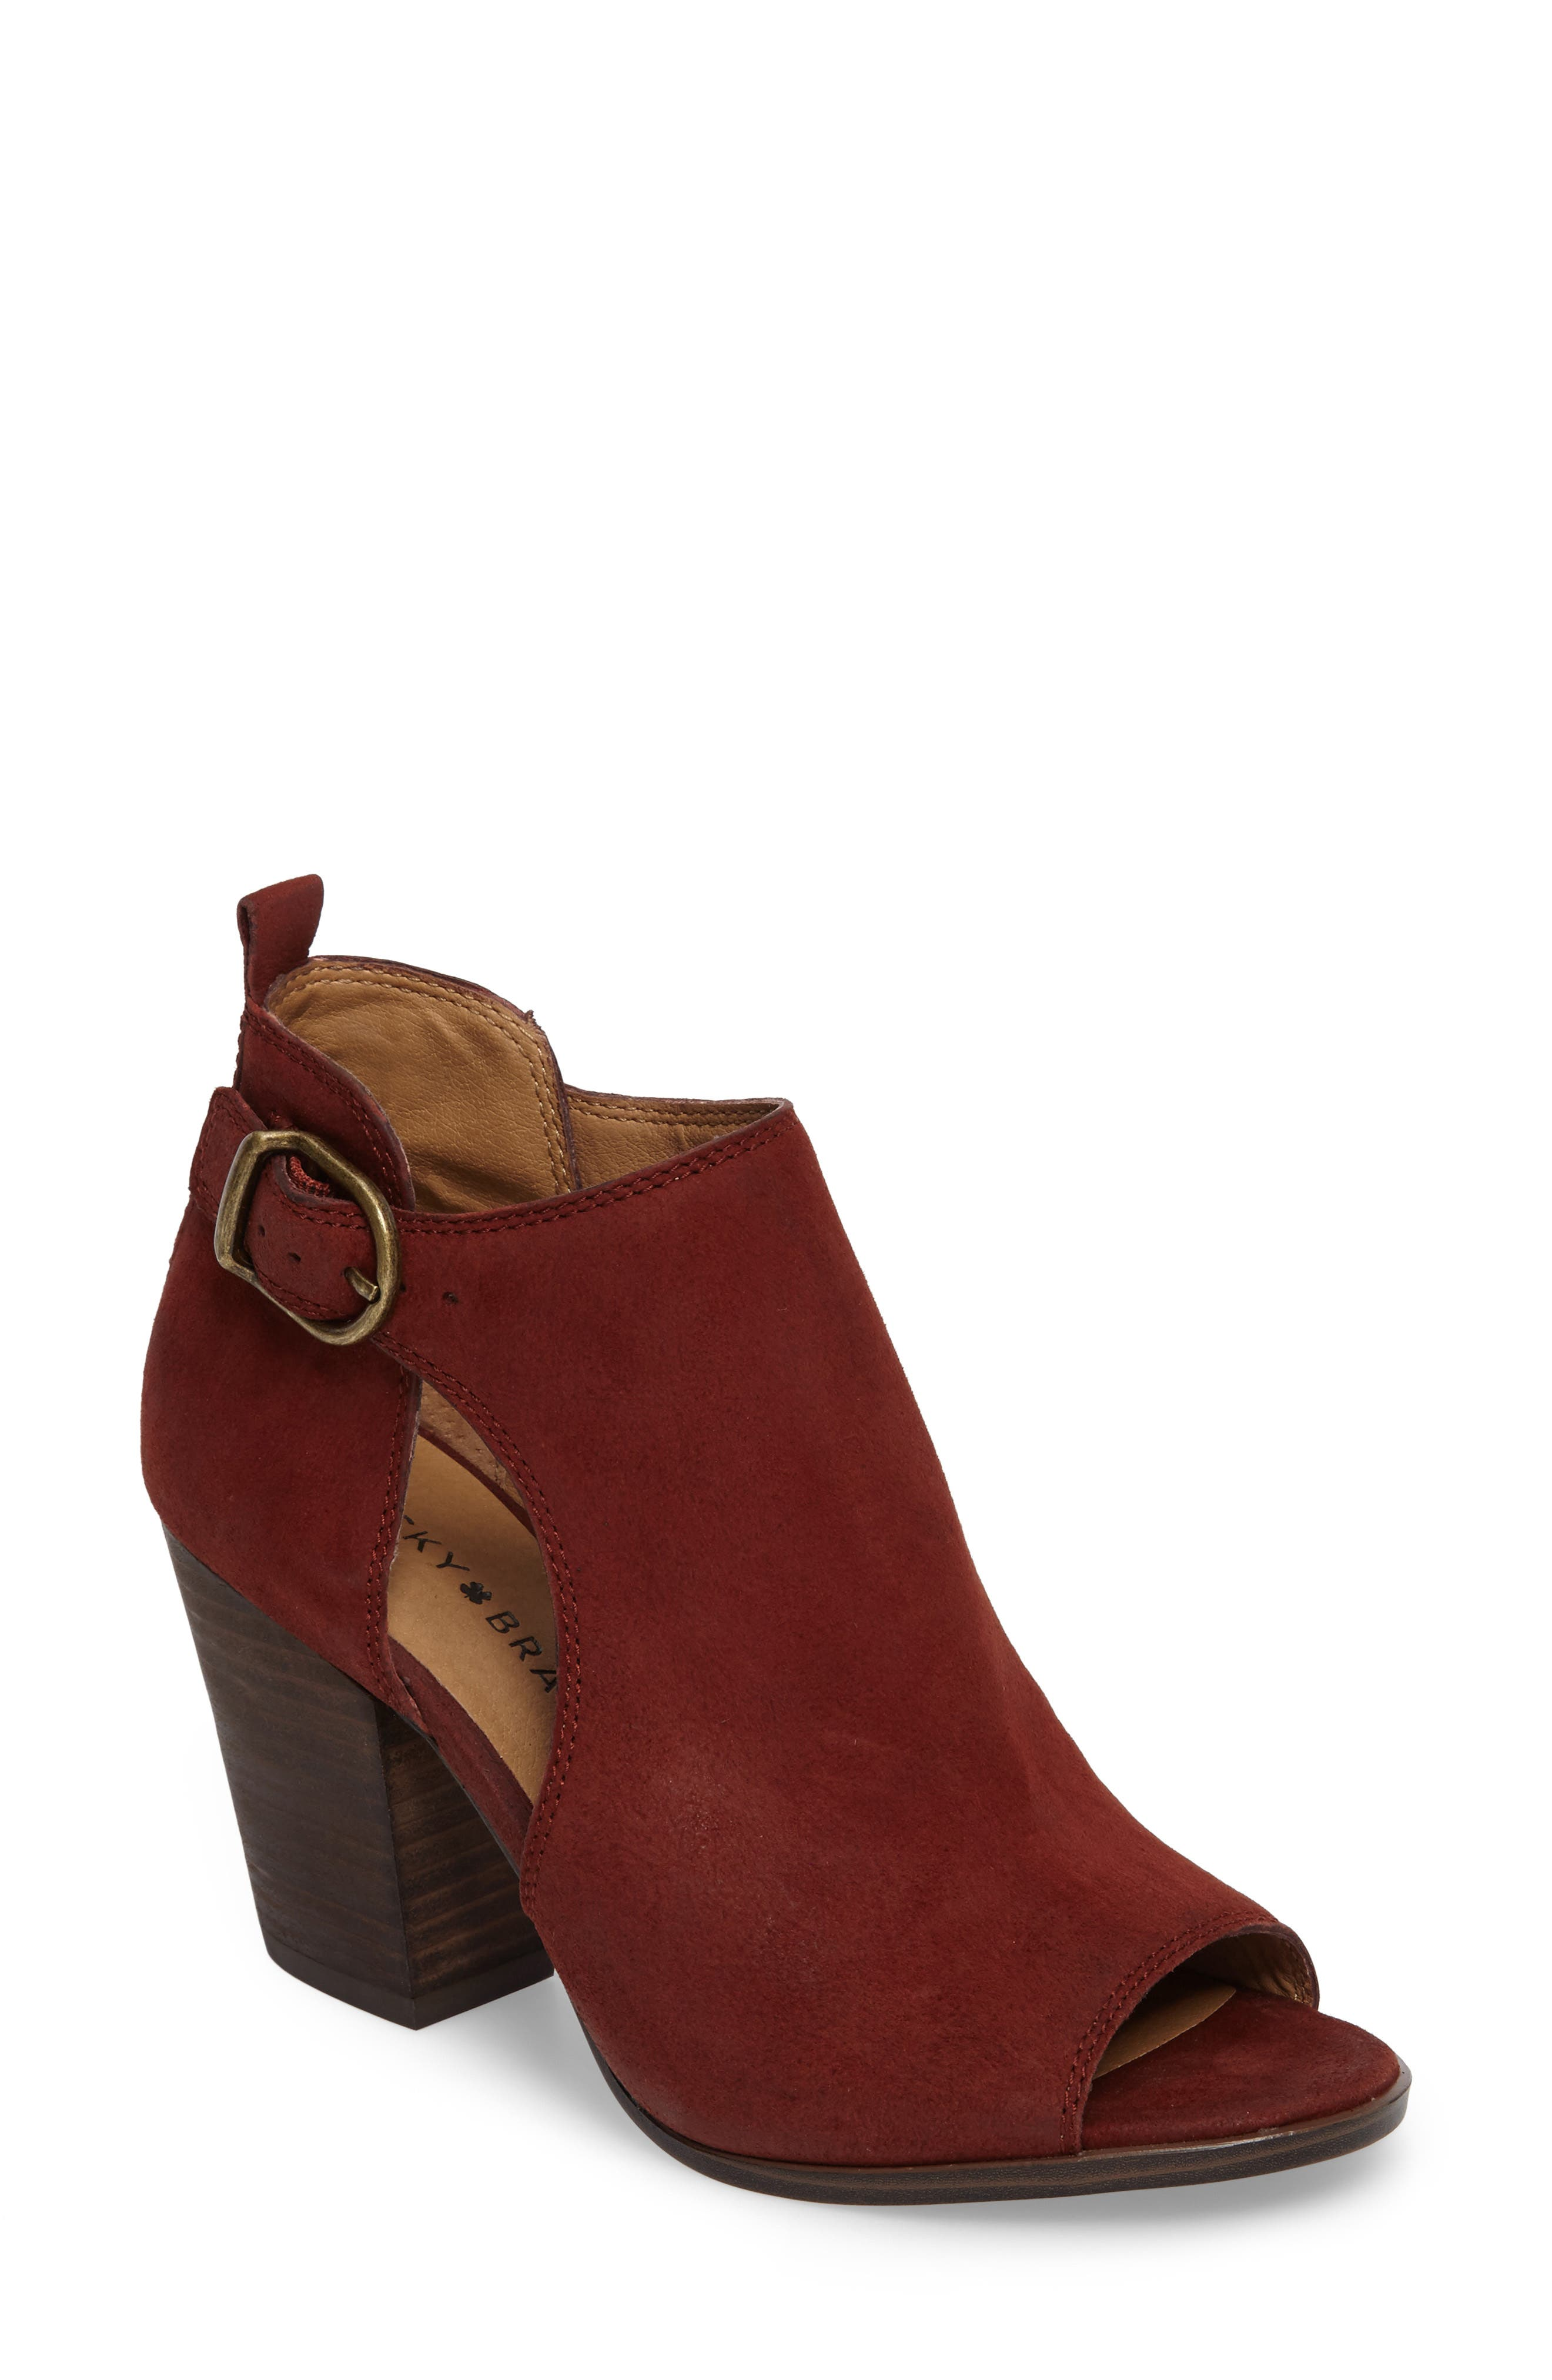 Oona Open Side Bootie,                         Main,                         color, Sable Leather